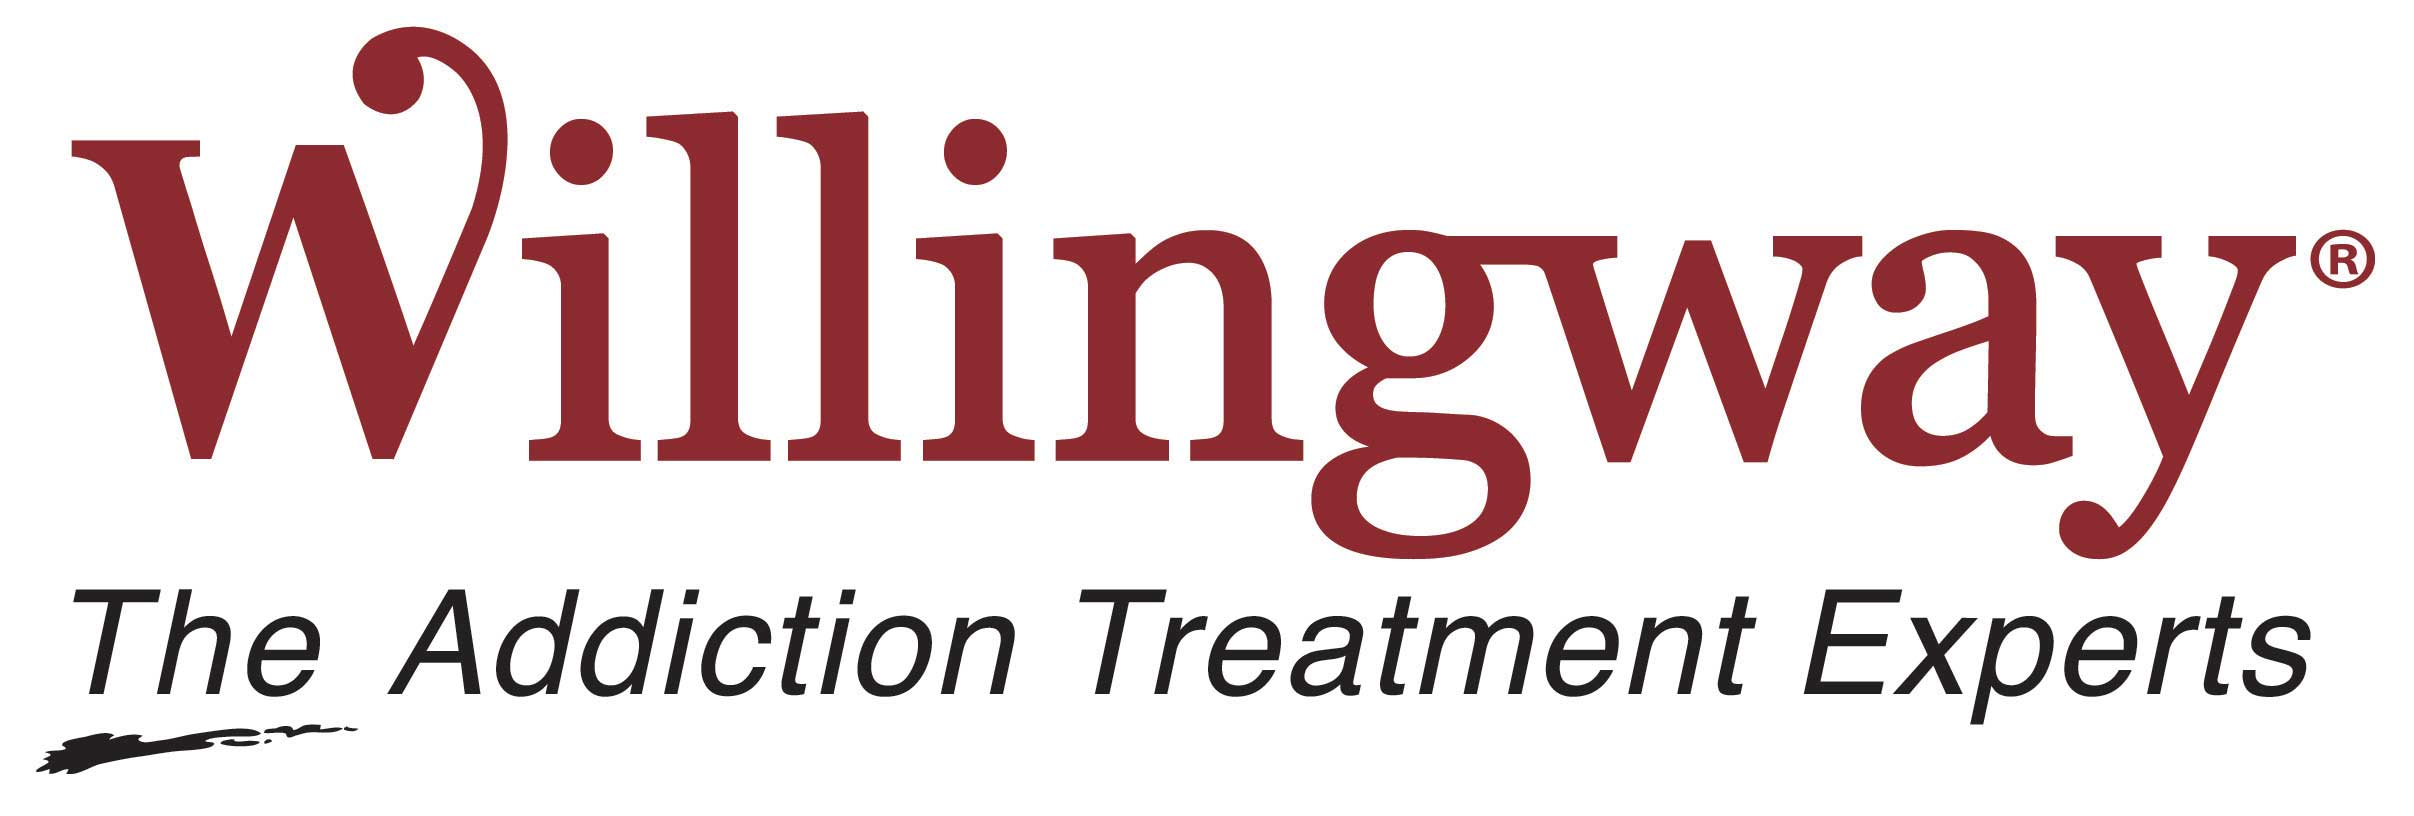 Willingway - the addiction treatment experts - statesboro georgia addiction treatment for men and women - alcohol rehab - drug rehab